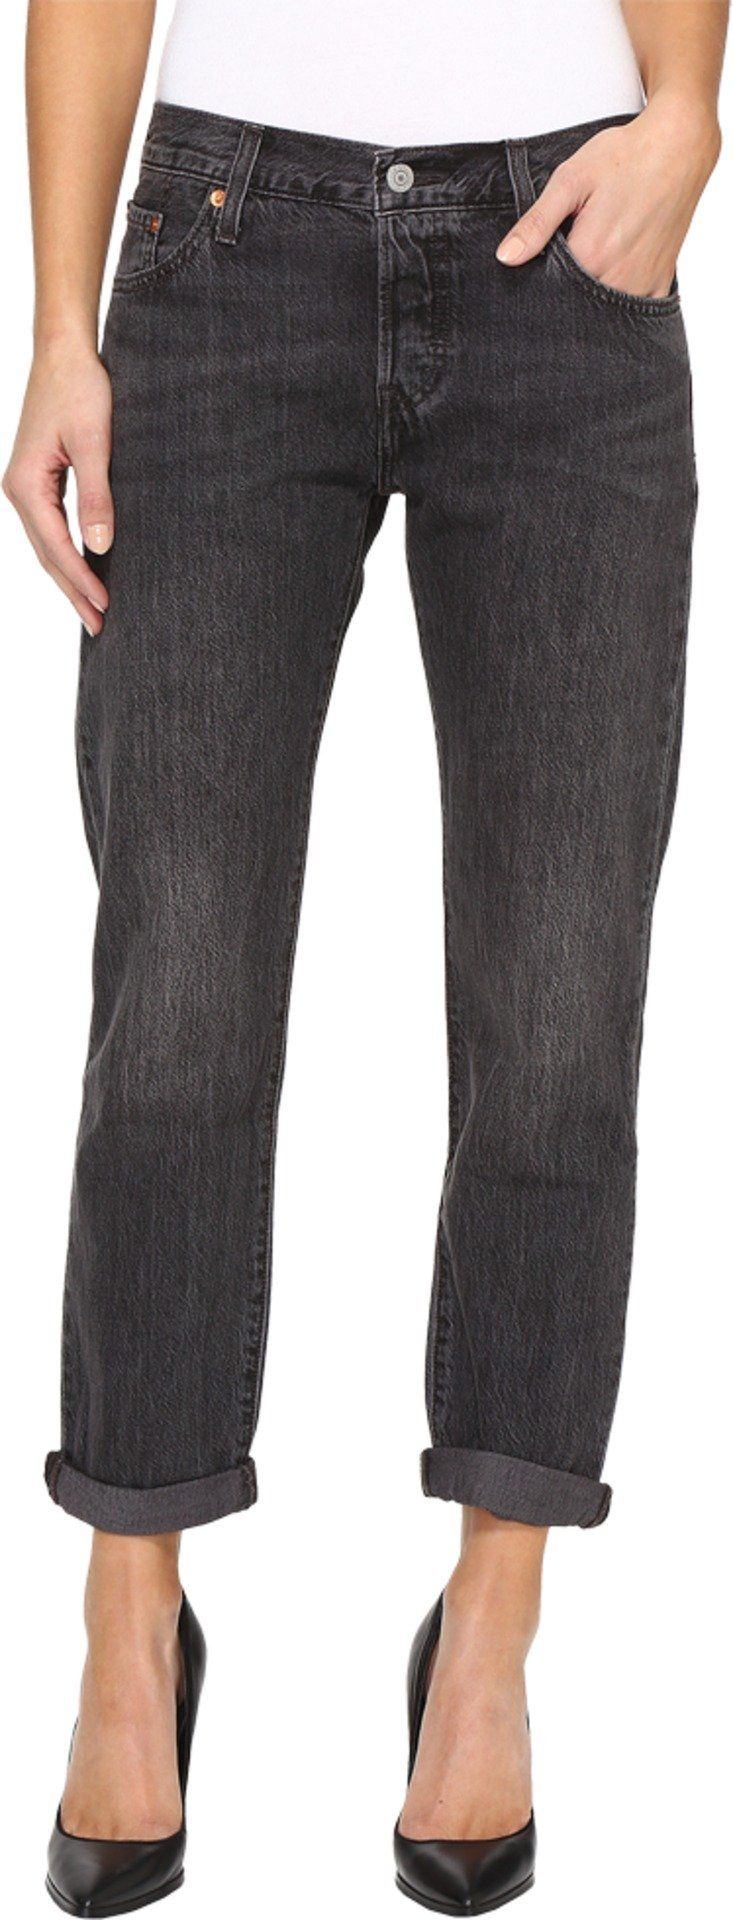 Levi's Womens Women's Premium 501 Customized and Tapered Jeans Fading Coal Jeans